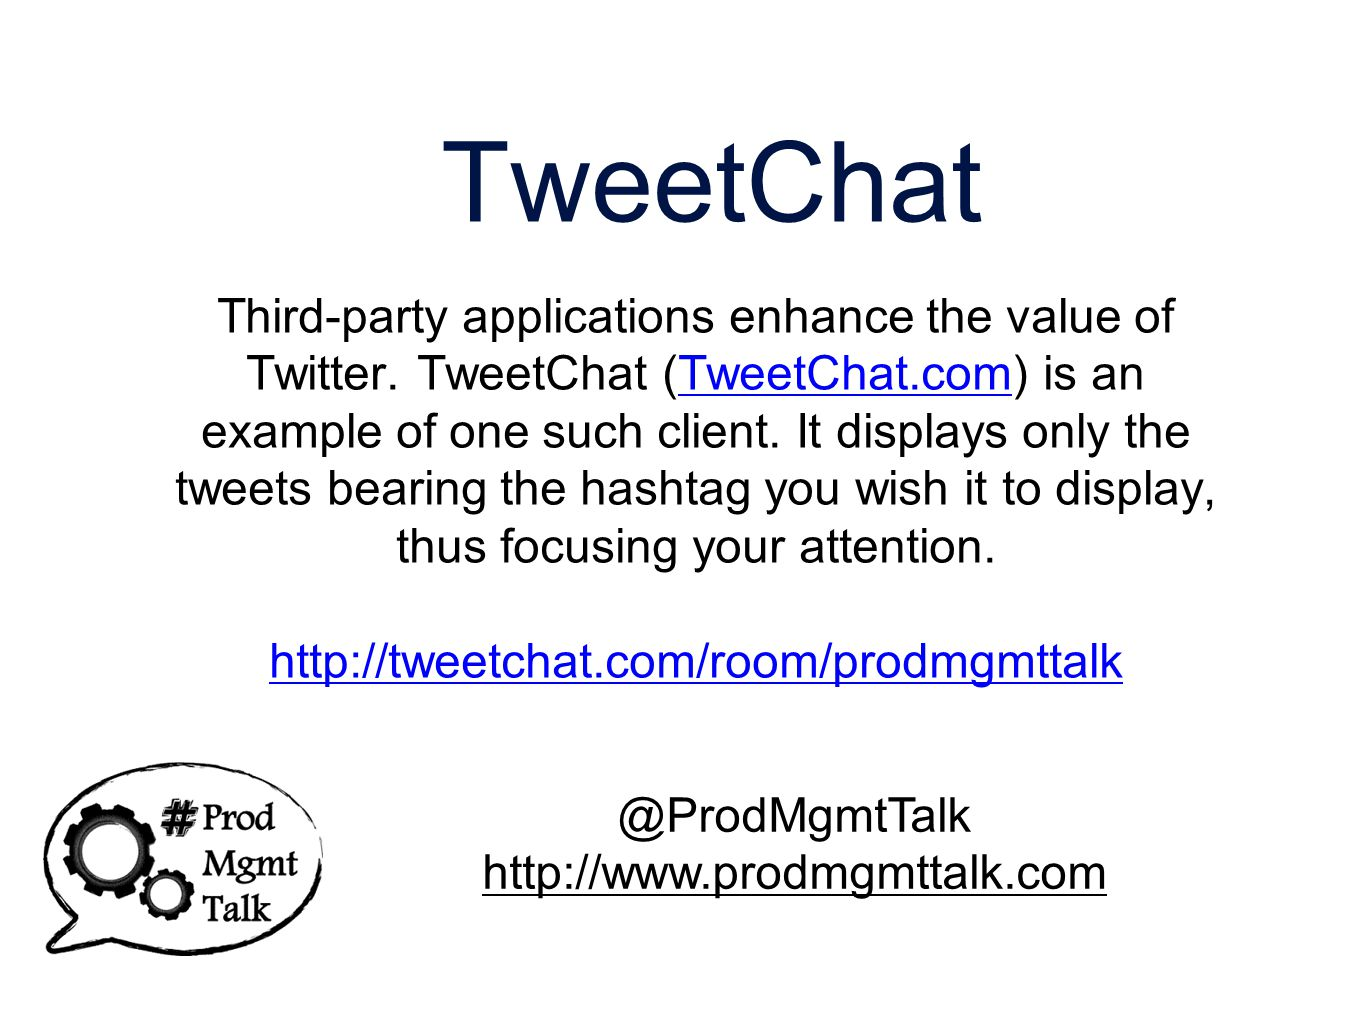 TweetChat Third-party applications enhance the value of Twitter.